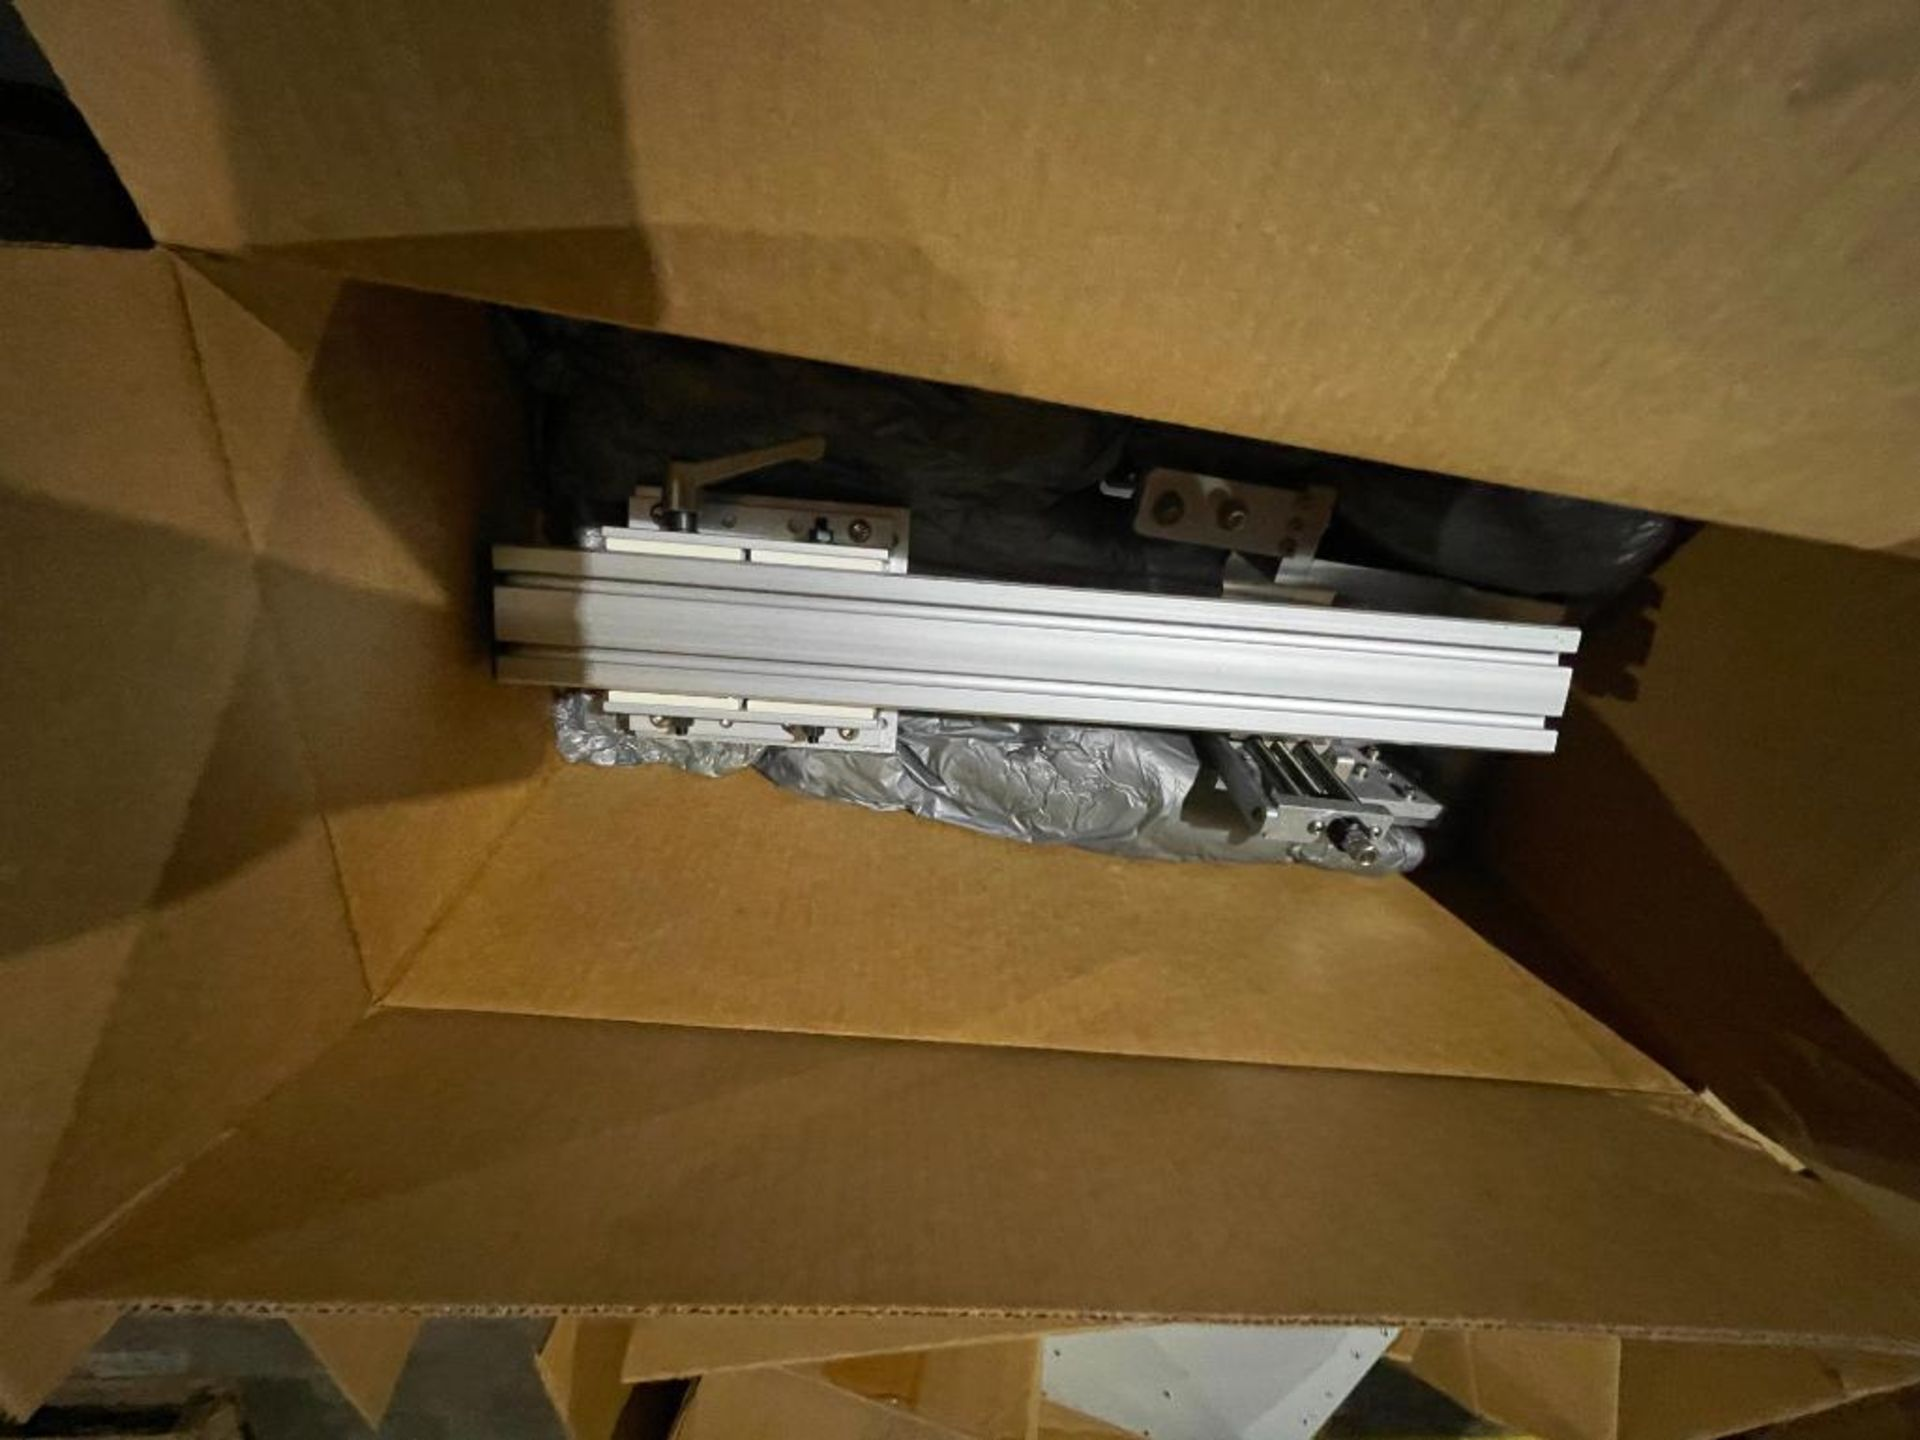 pallet of miscellaneous electronics - Image 15 of 16